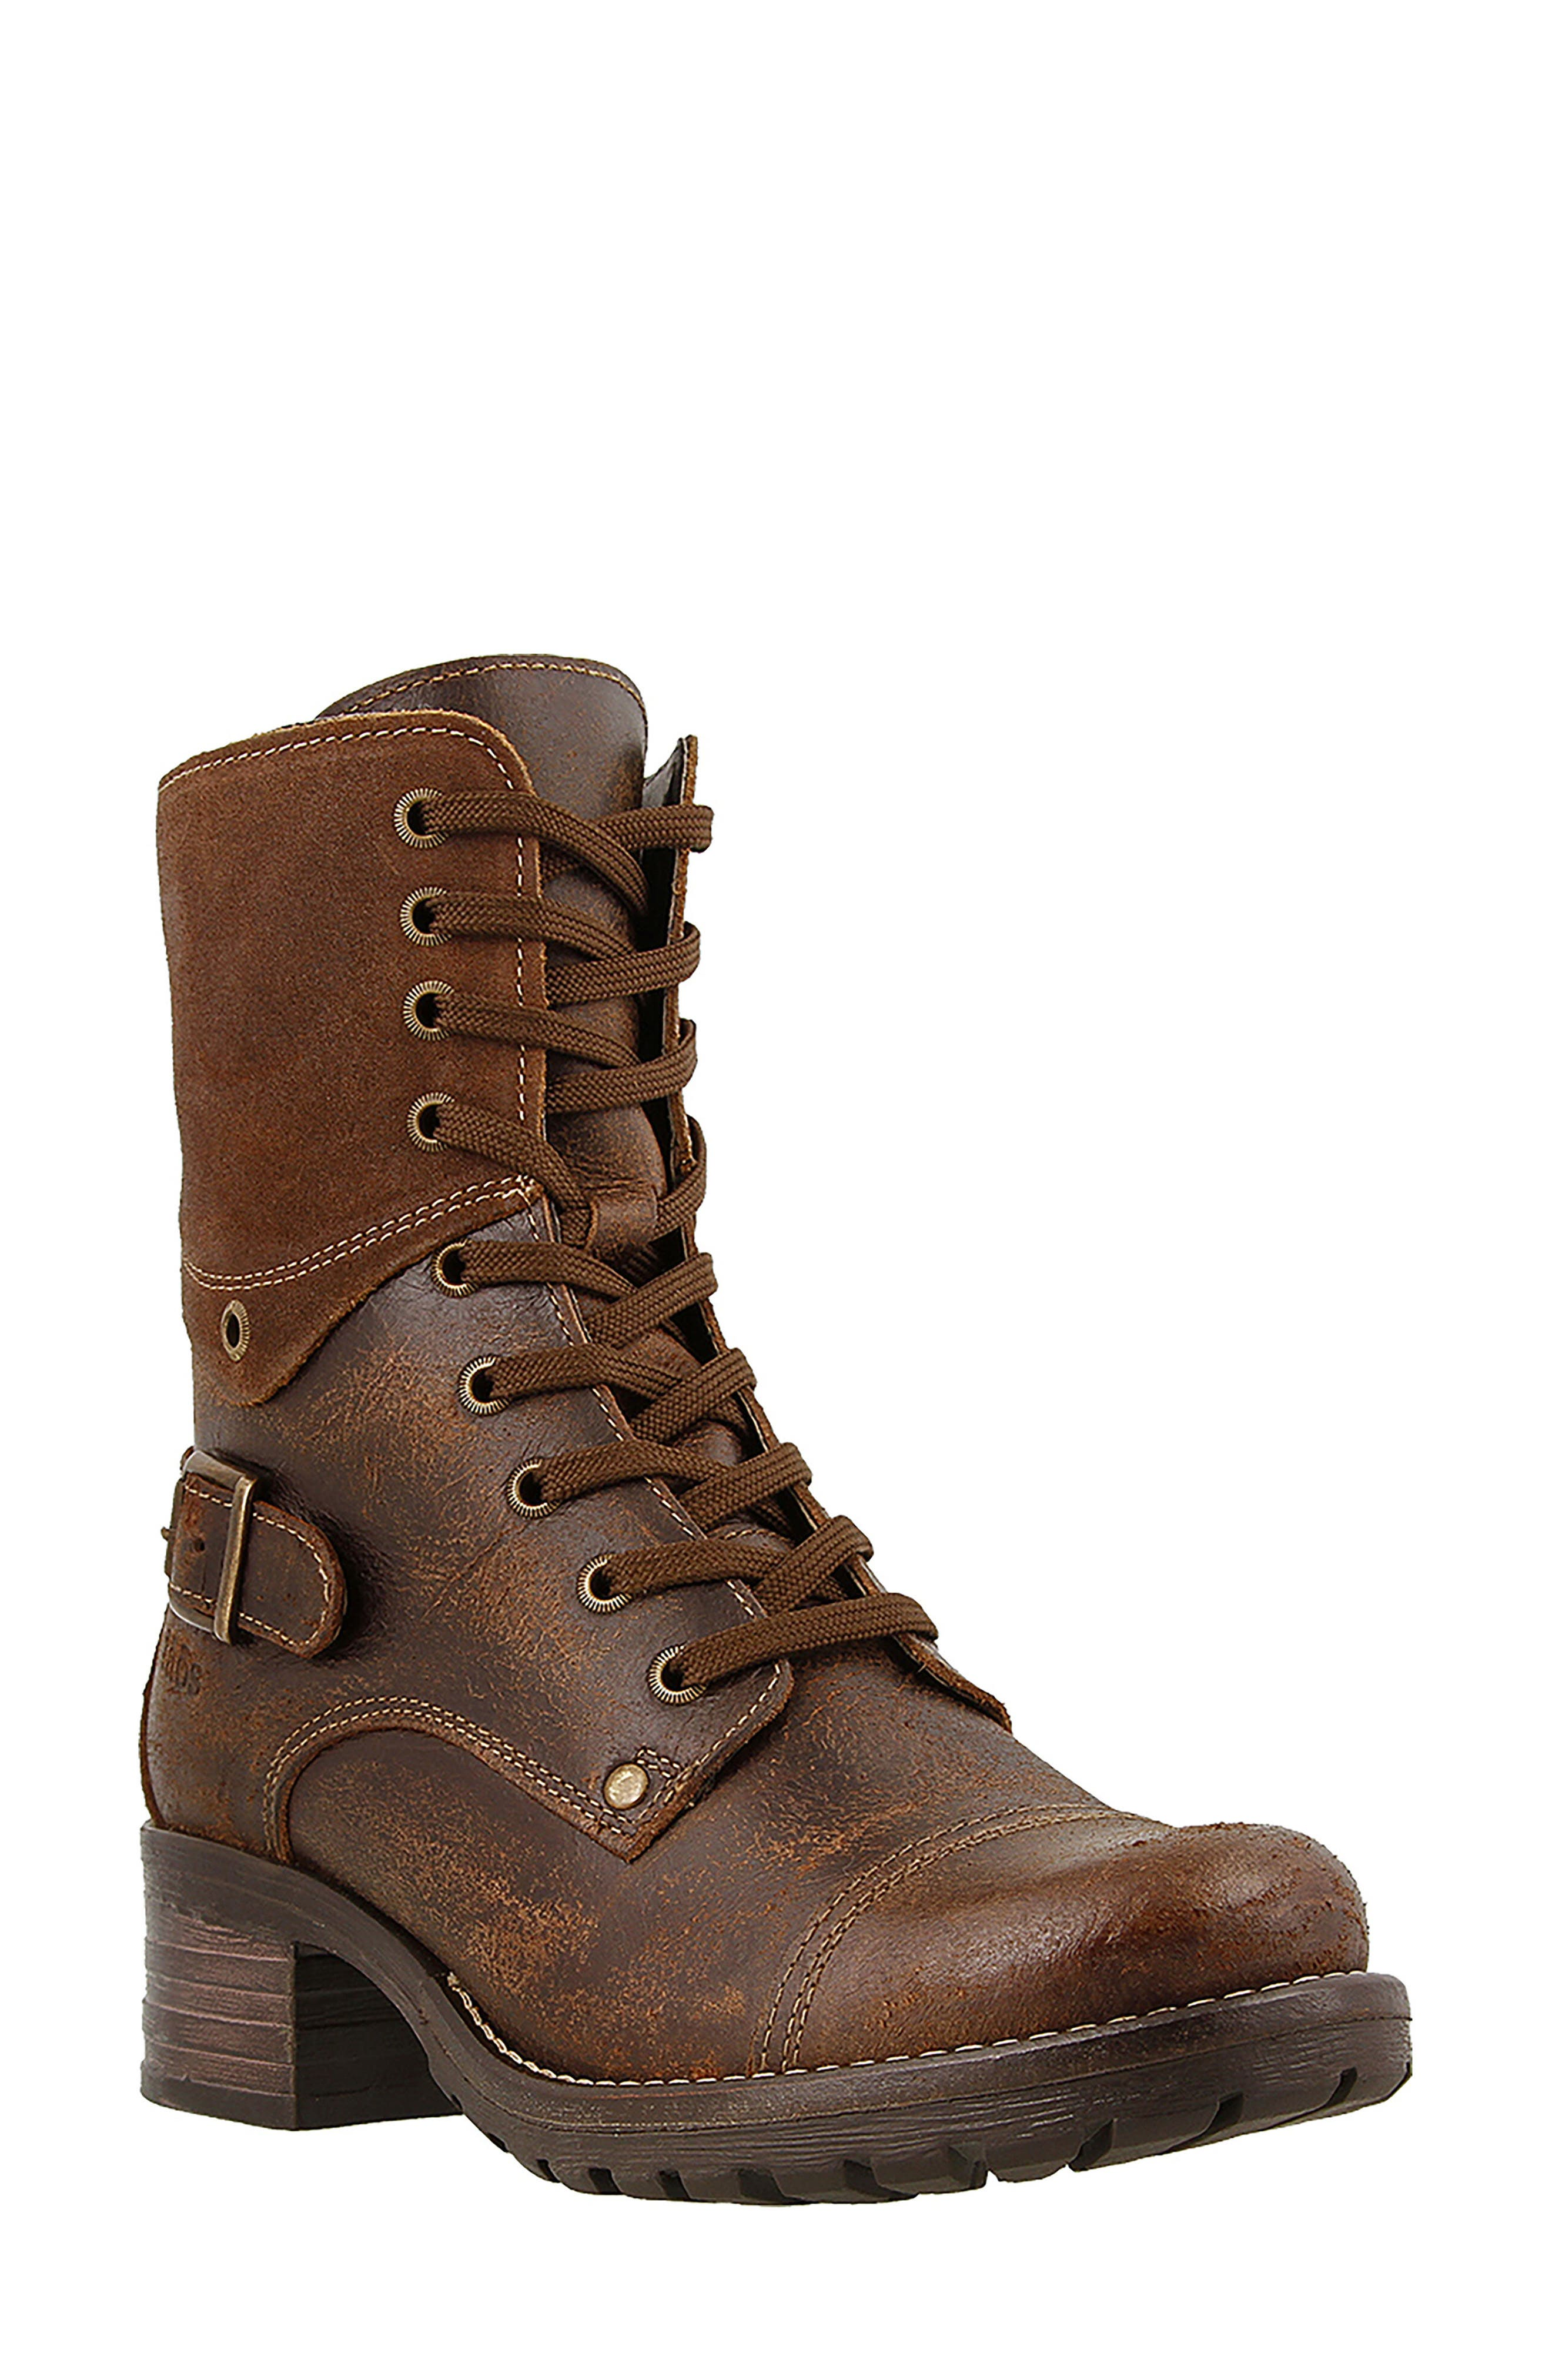 Crave Boot,                         Main,                         color, Brown Leather